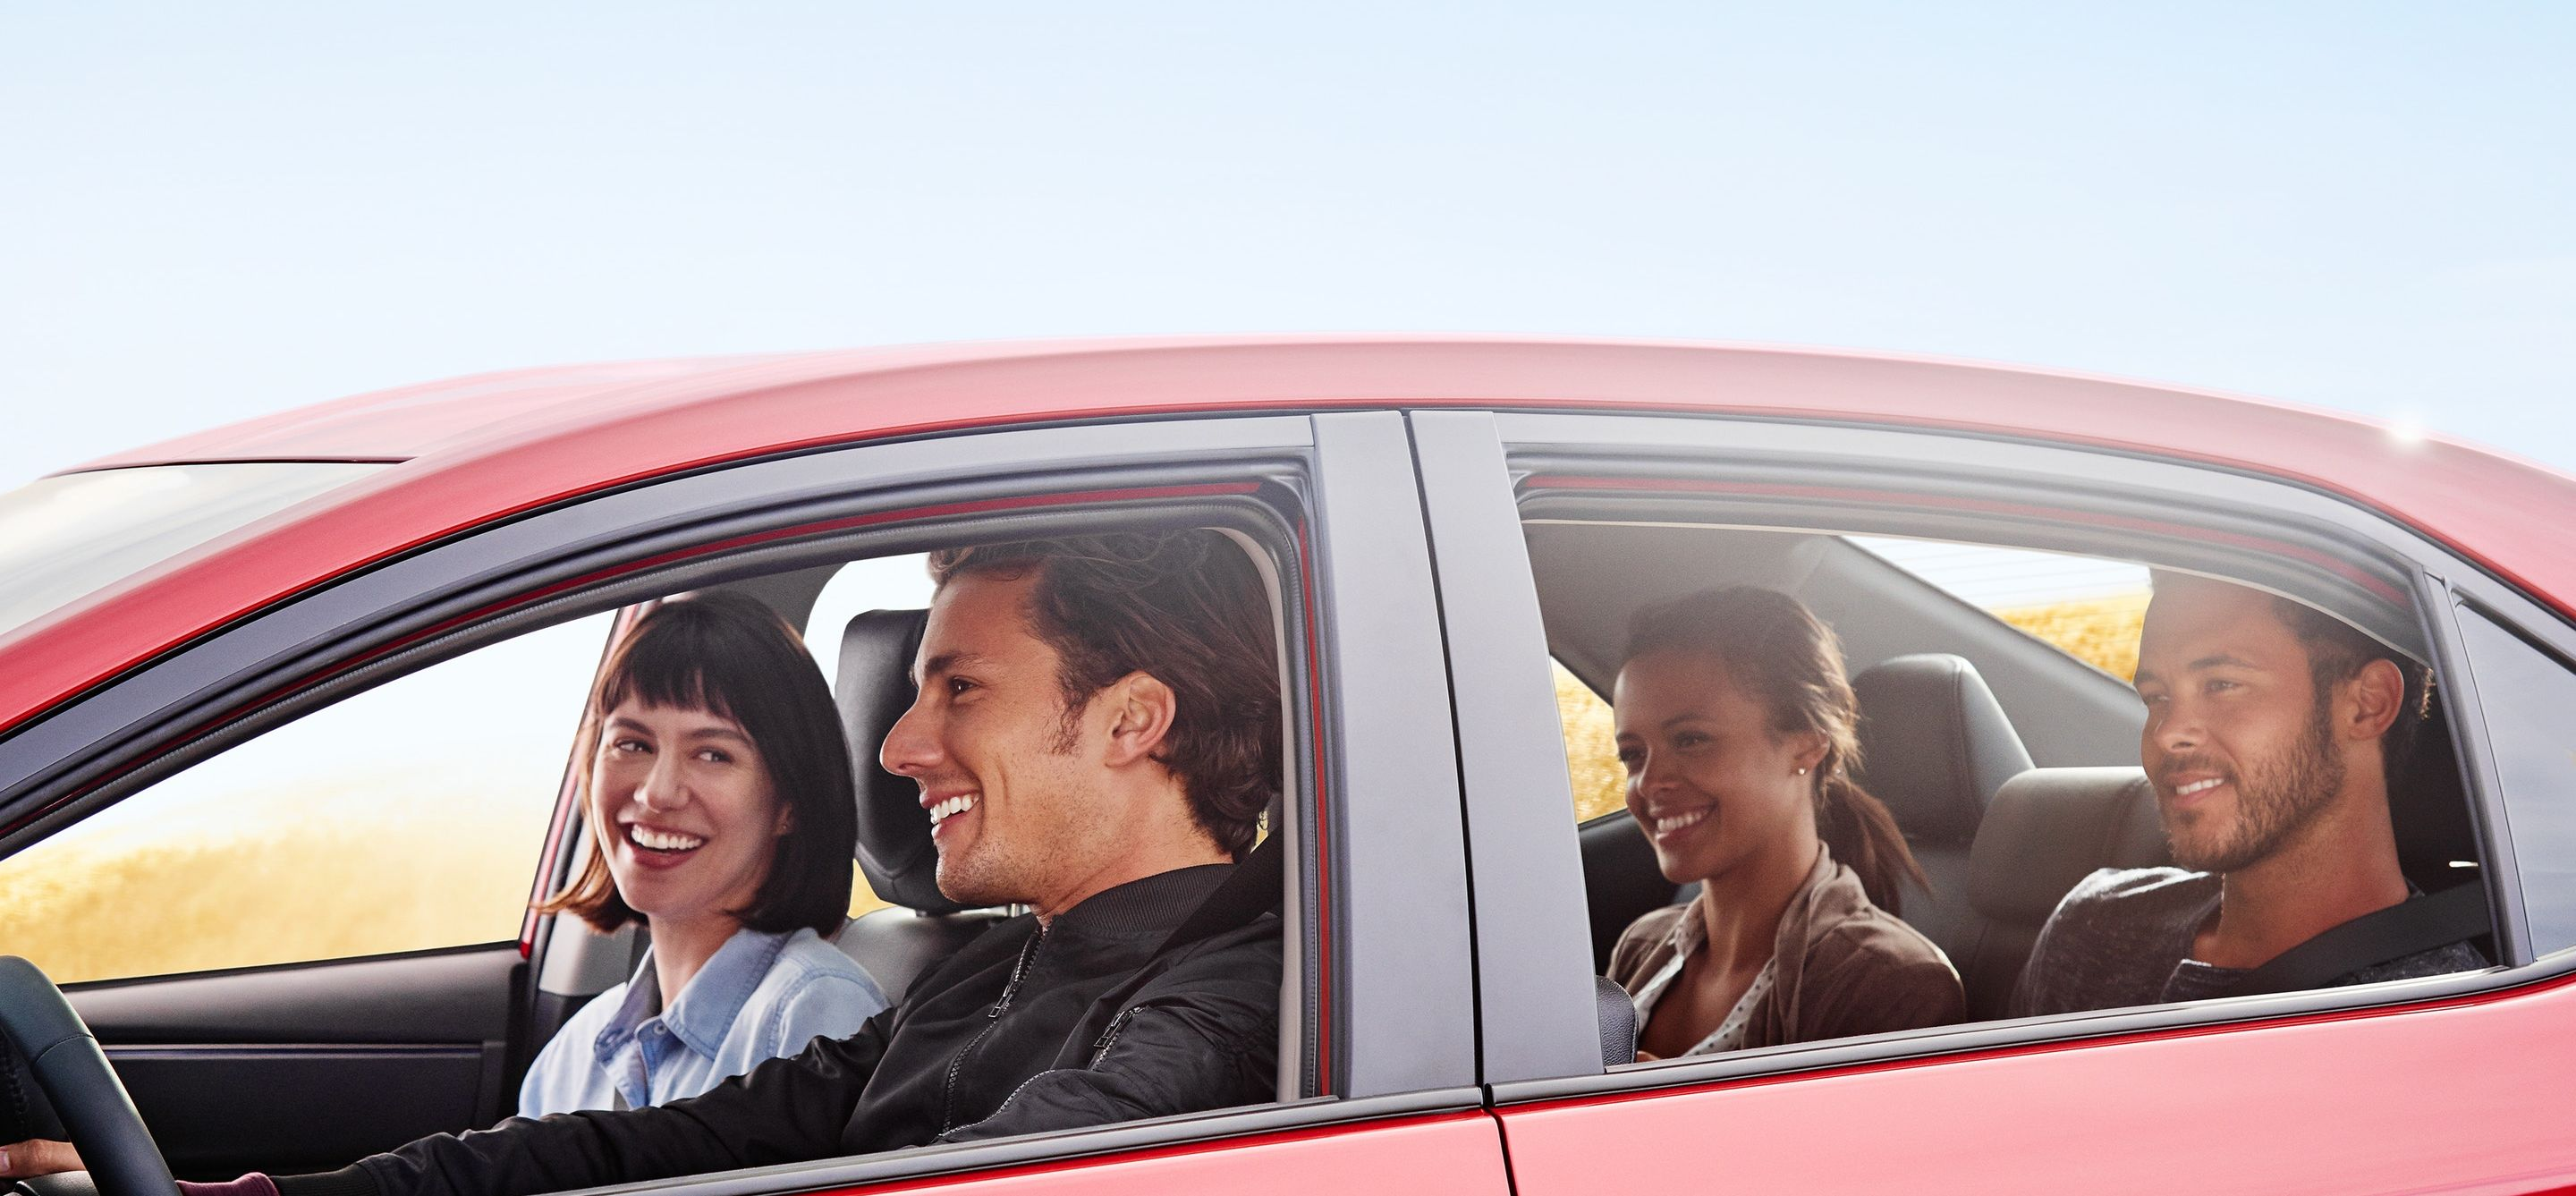 Fun for Everyone in the Toyota Corolla!